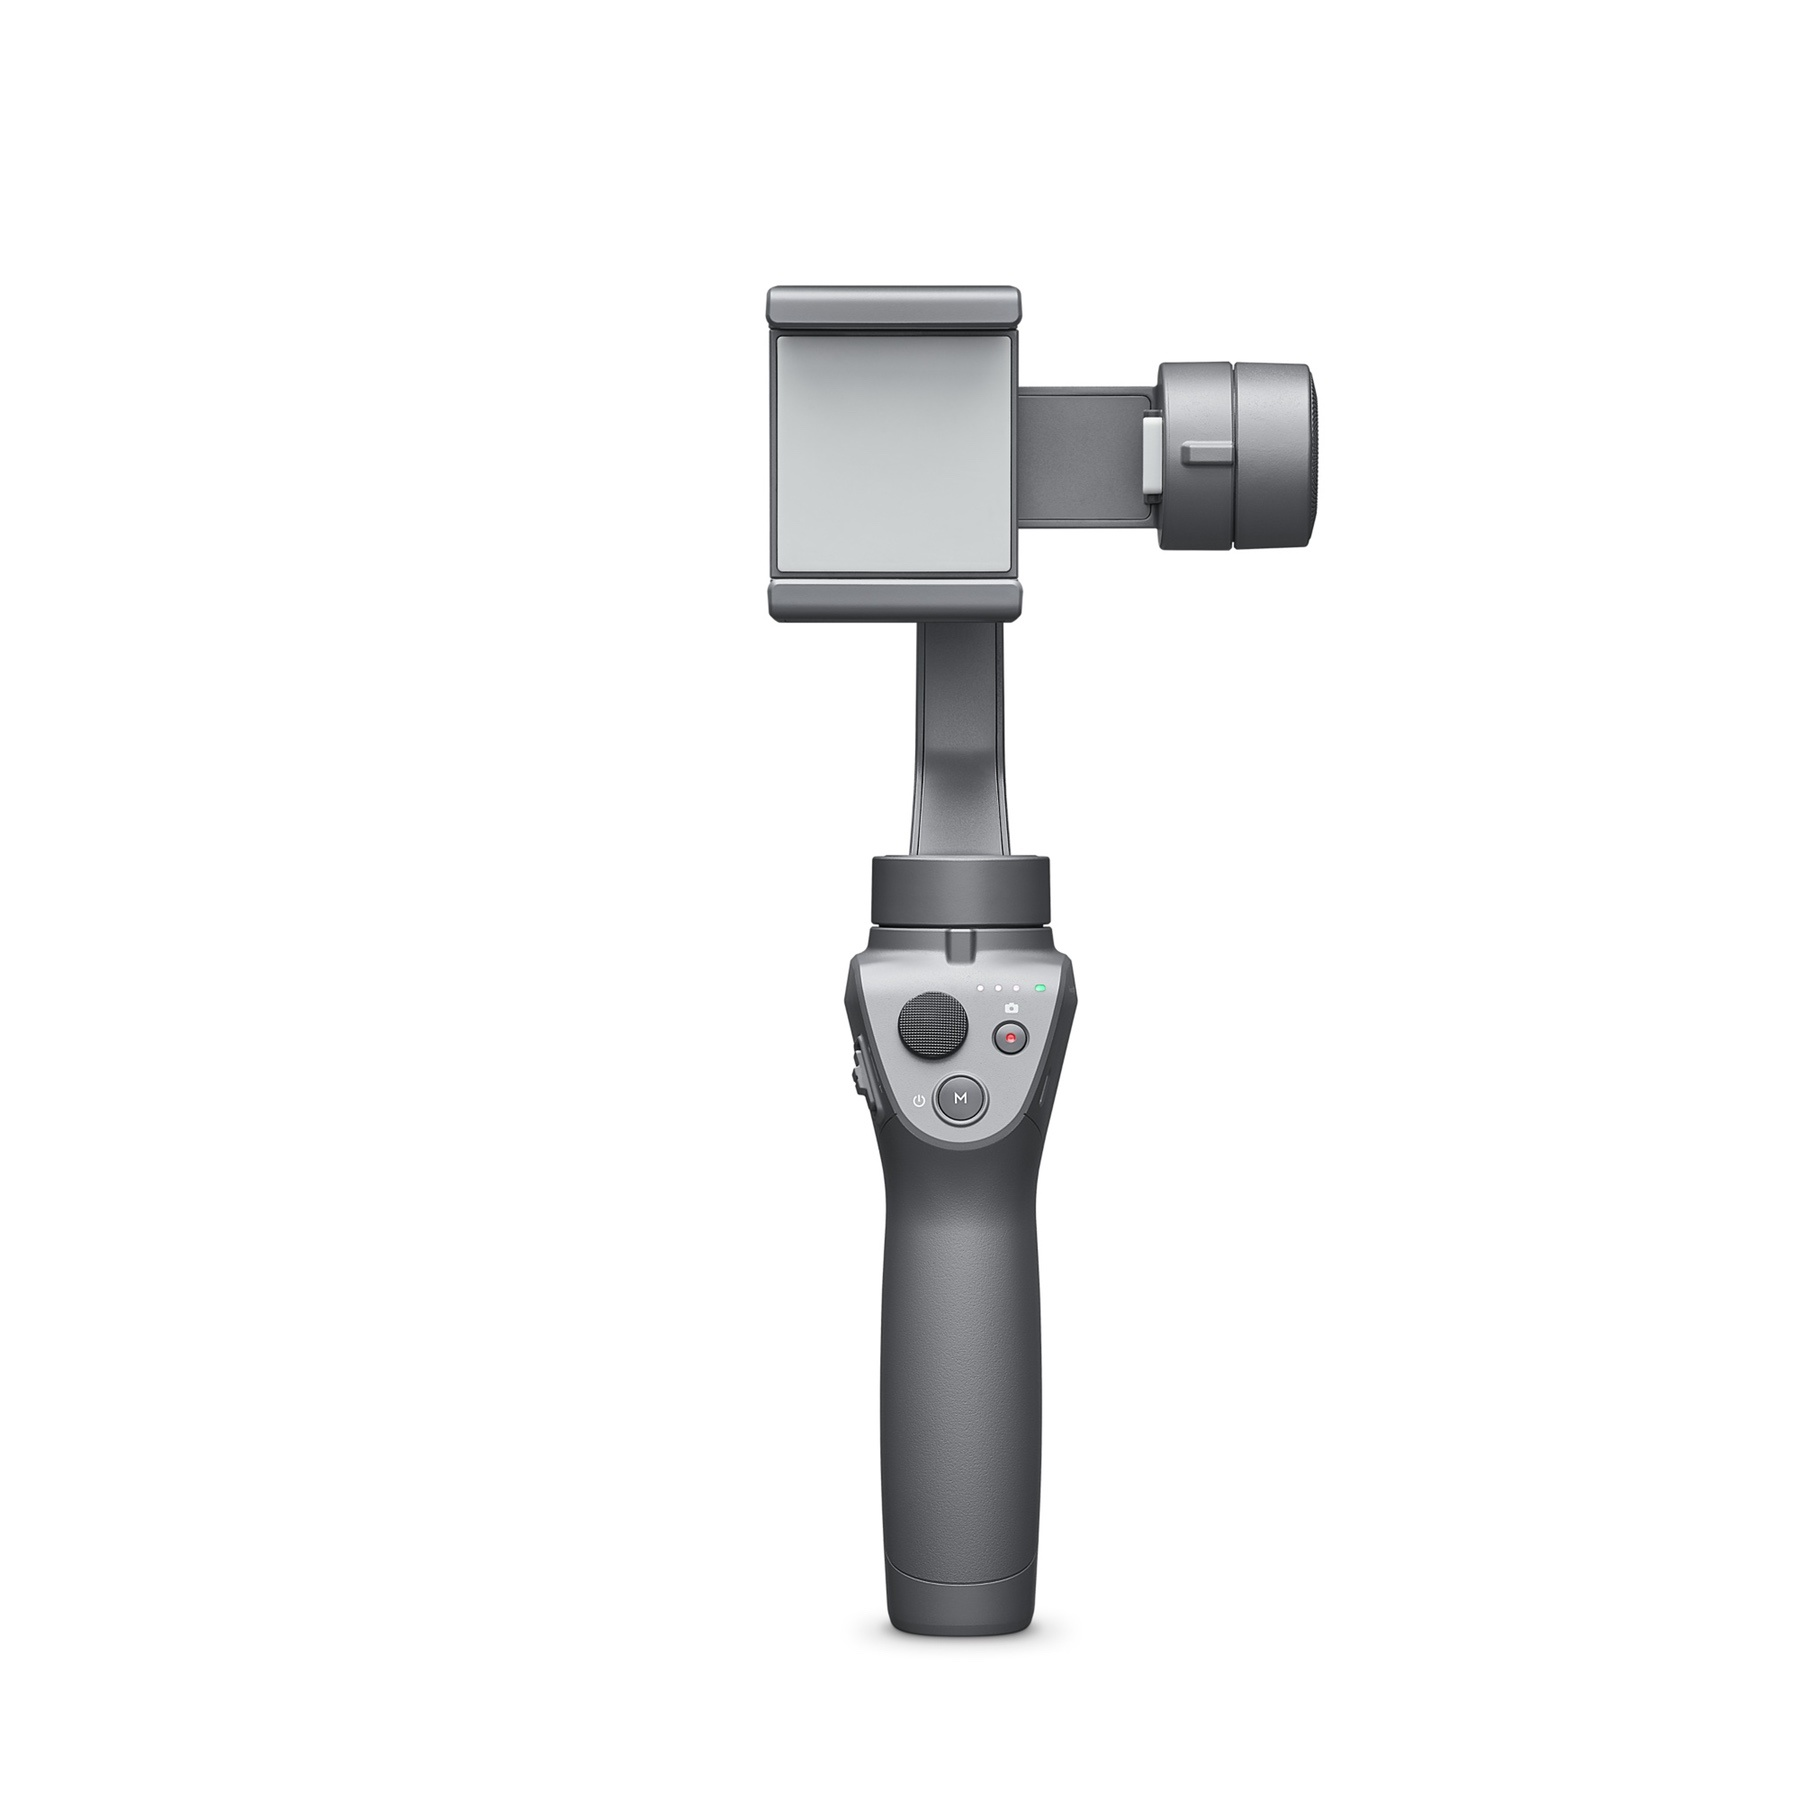 DJI-Osmo-Mobile-2-Apple-02